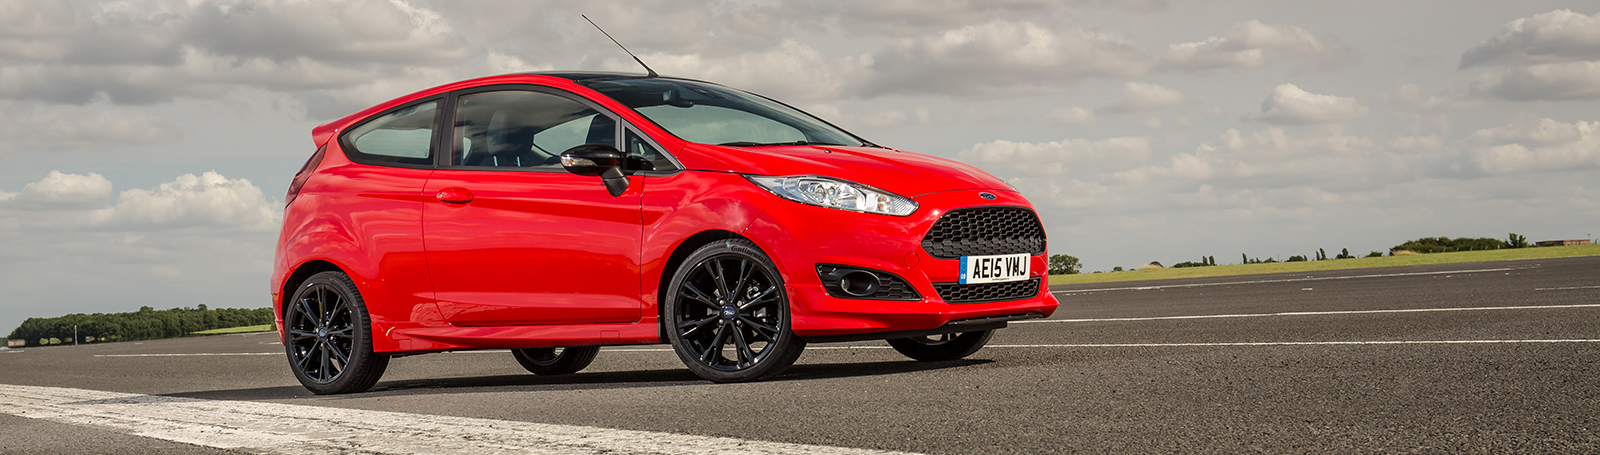 The Fiesta And Focus Also Get Zetec S Trim Which Adds Around  To The Cost On The Outside Youll Get An Even Sportier Look Adding A Bit Of Flair Not